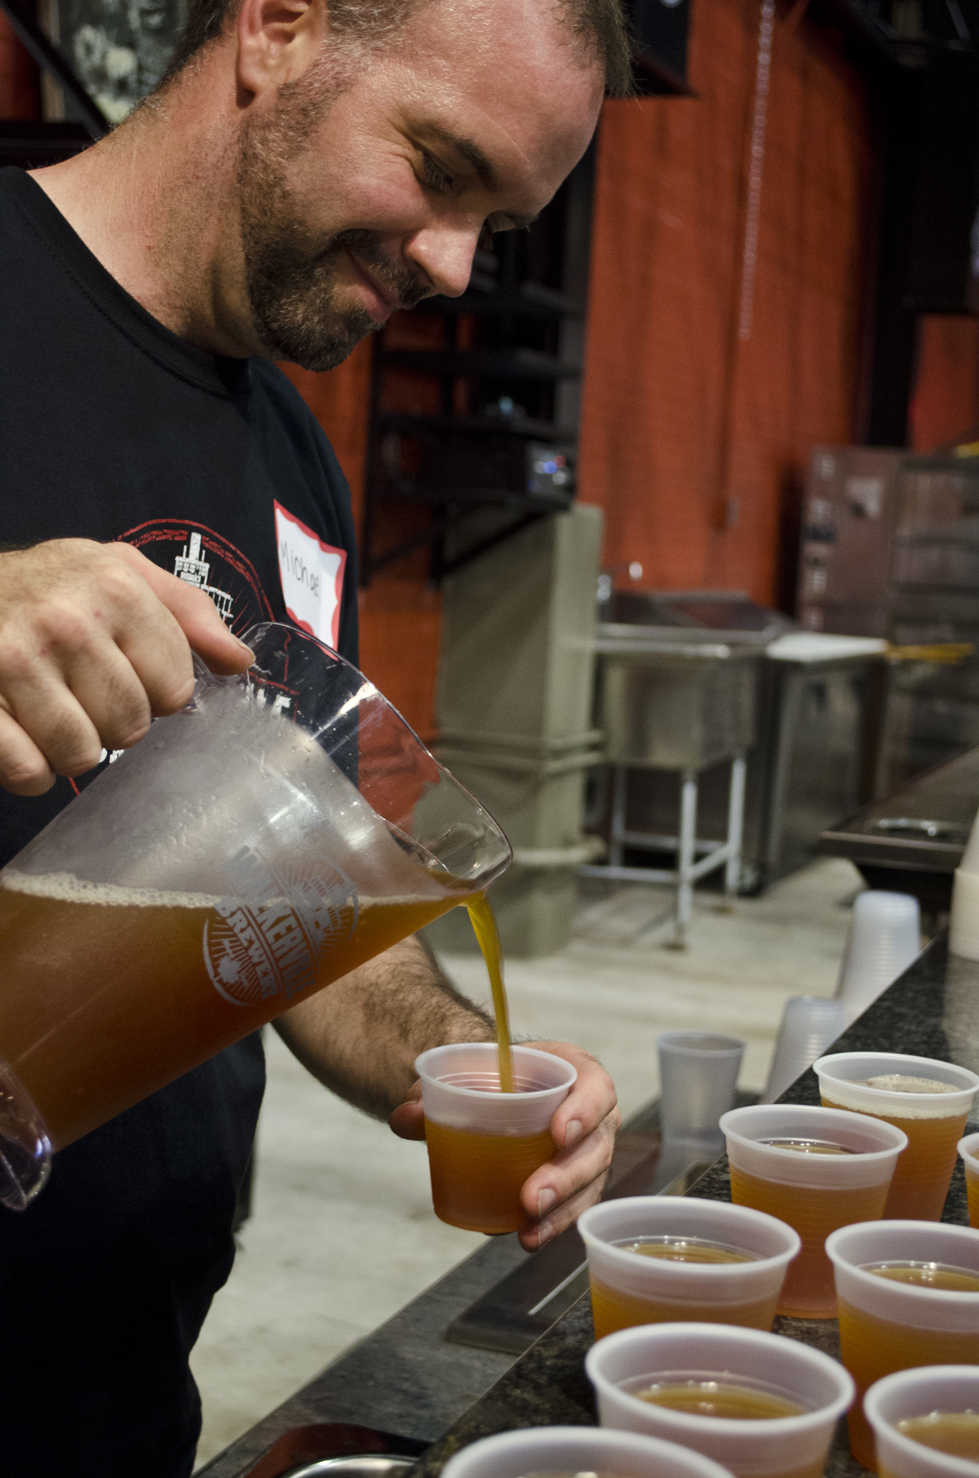 A look inside the Walkerville Brewery during their 'invite only' taste test.